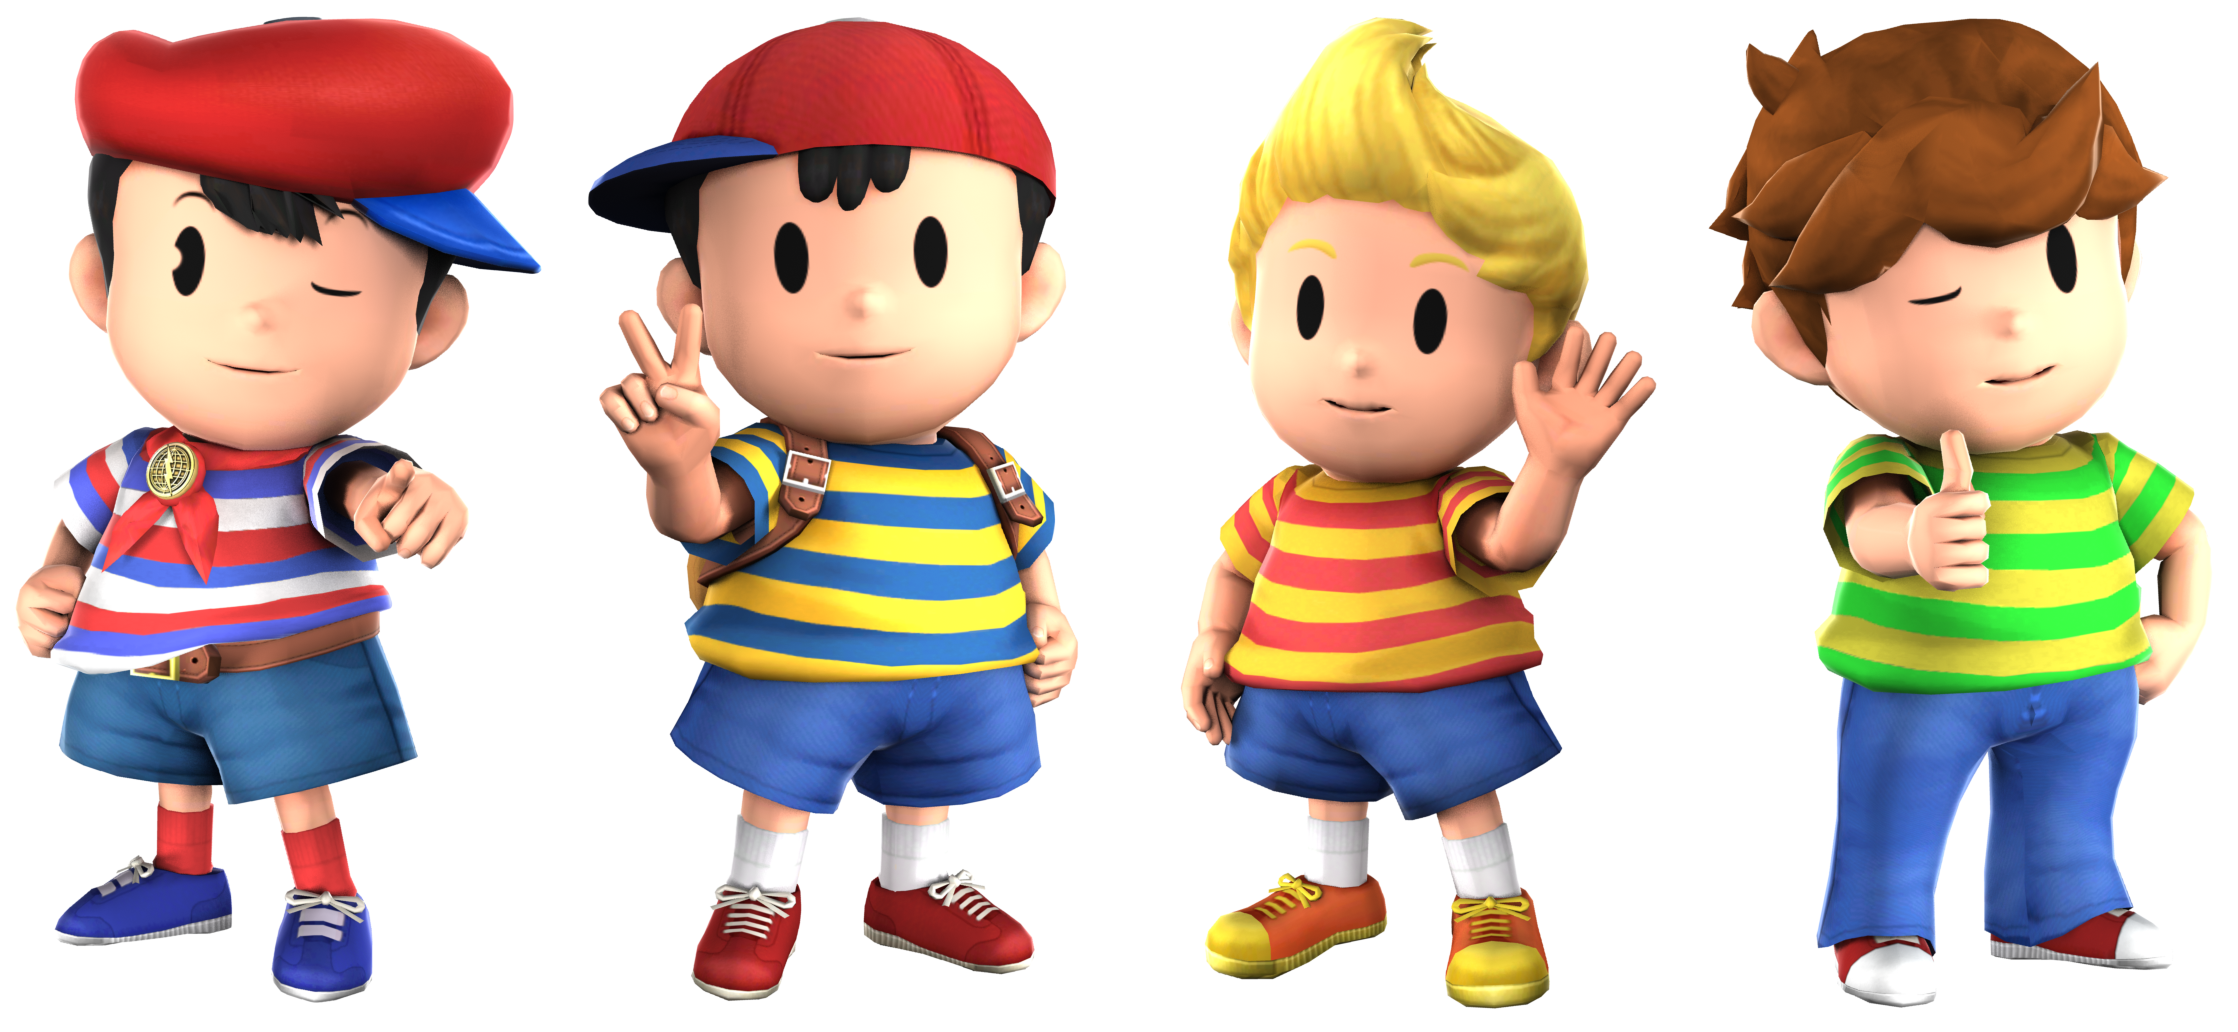 Mother main protagonists, Smash 4 style | EarthBound